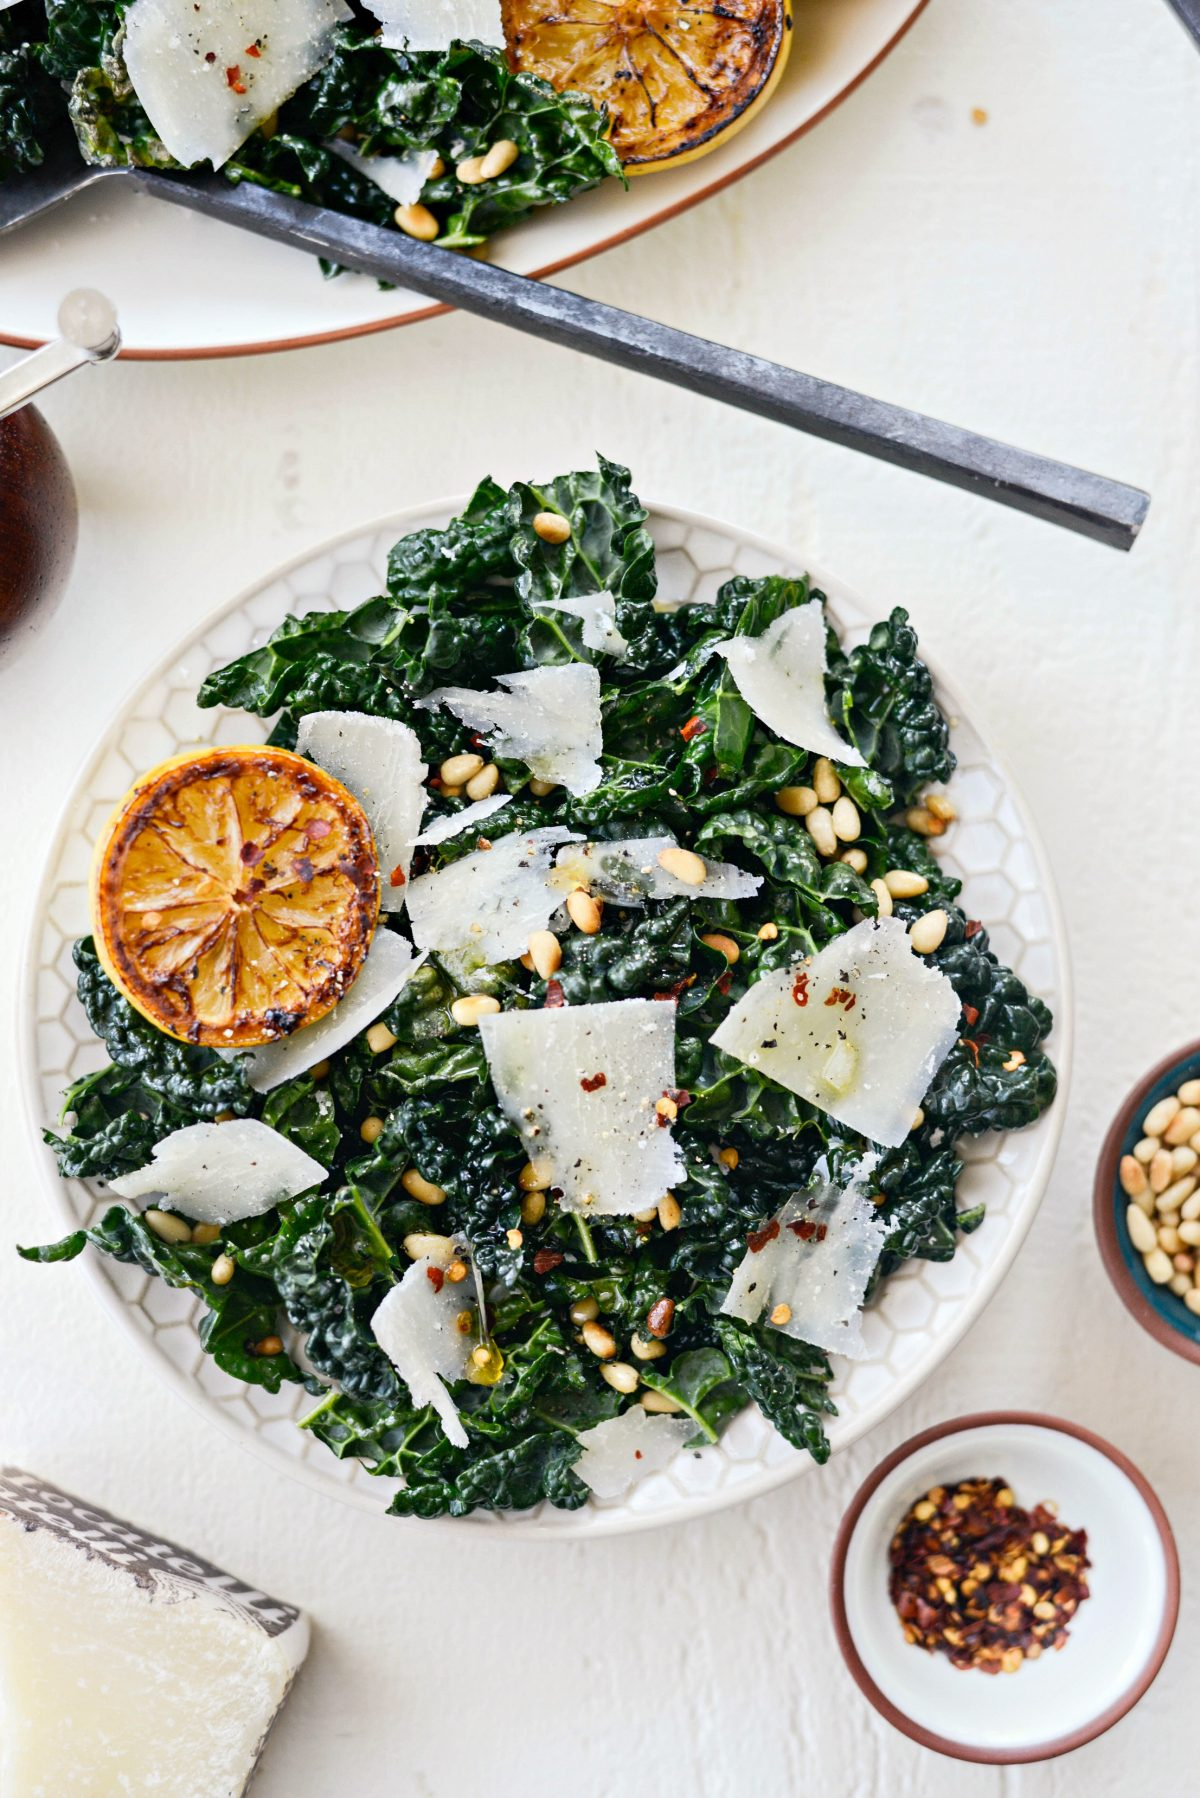 Charred Lemon and Tuscan Kale Salad l SimplyScratch.com #tuscan #kale #charred #lemon #pecorino #pinenuts